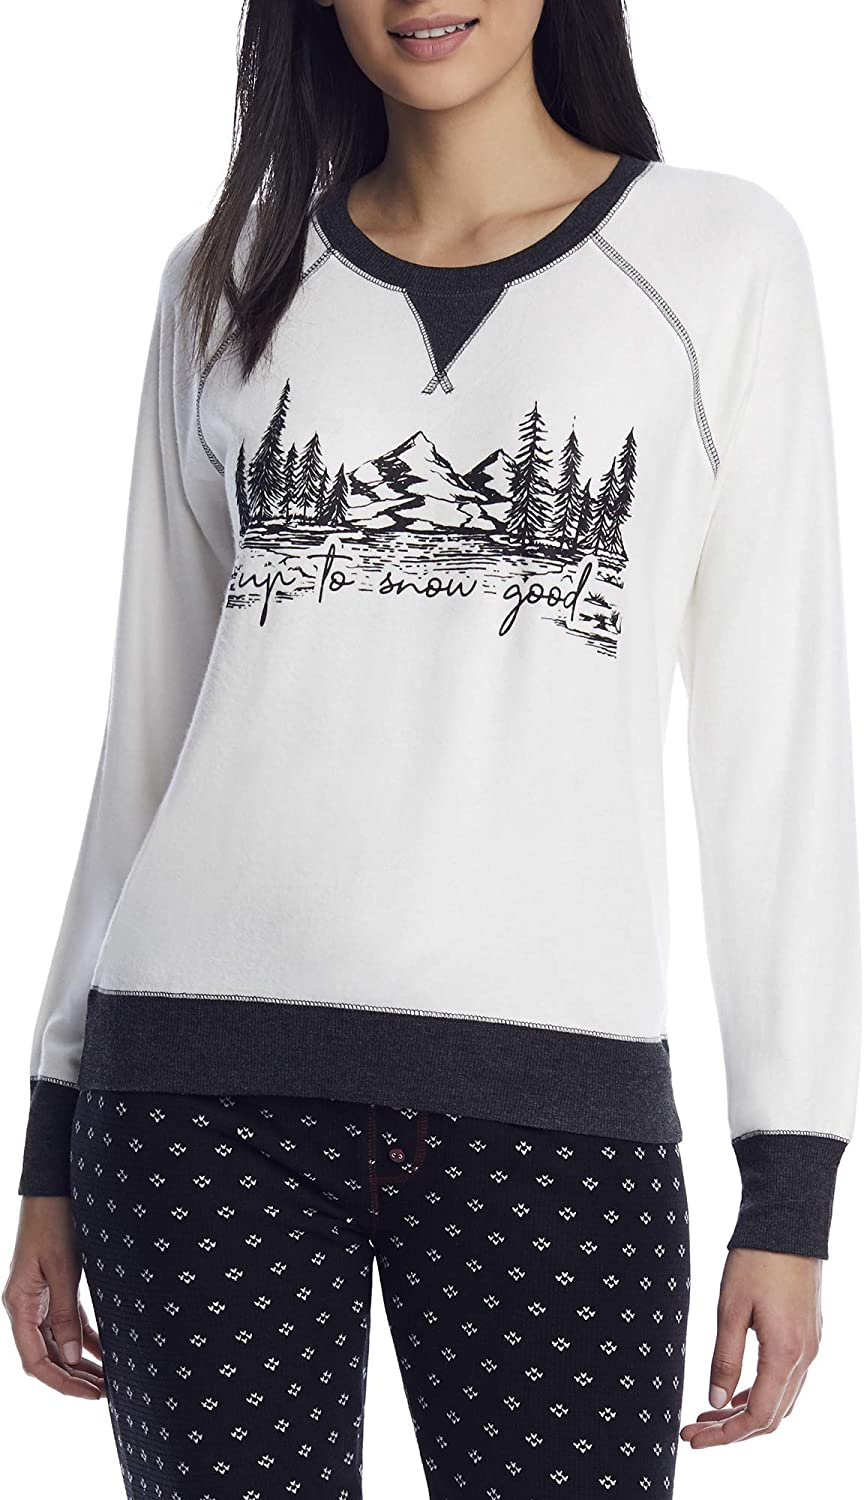 PJ Salvage Women's Loungewear Snow Max 65% OFF Dot Top Limited price sale Sleeve Long